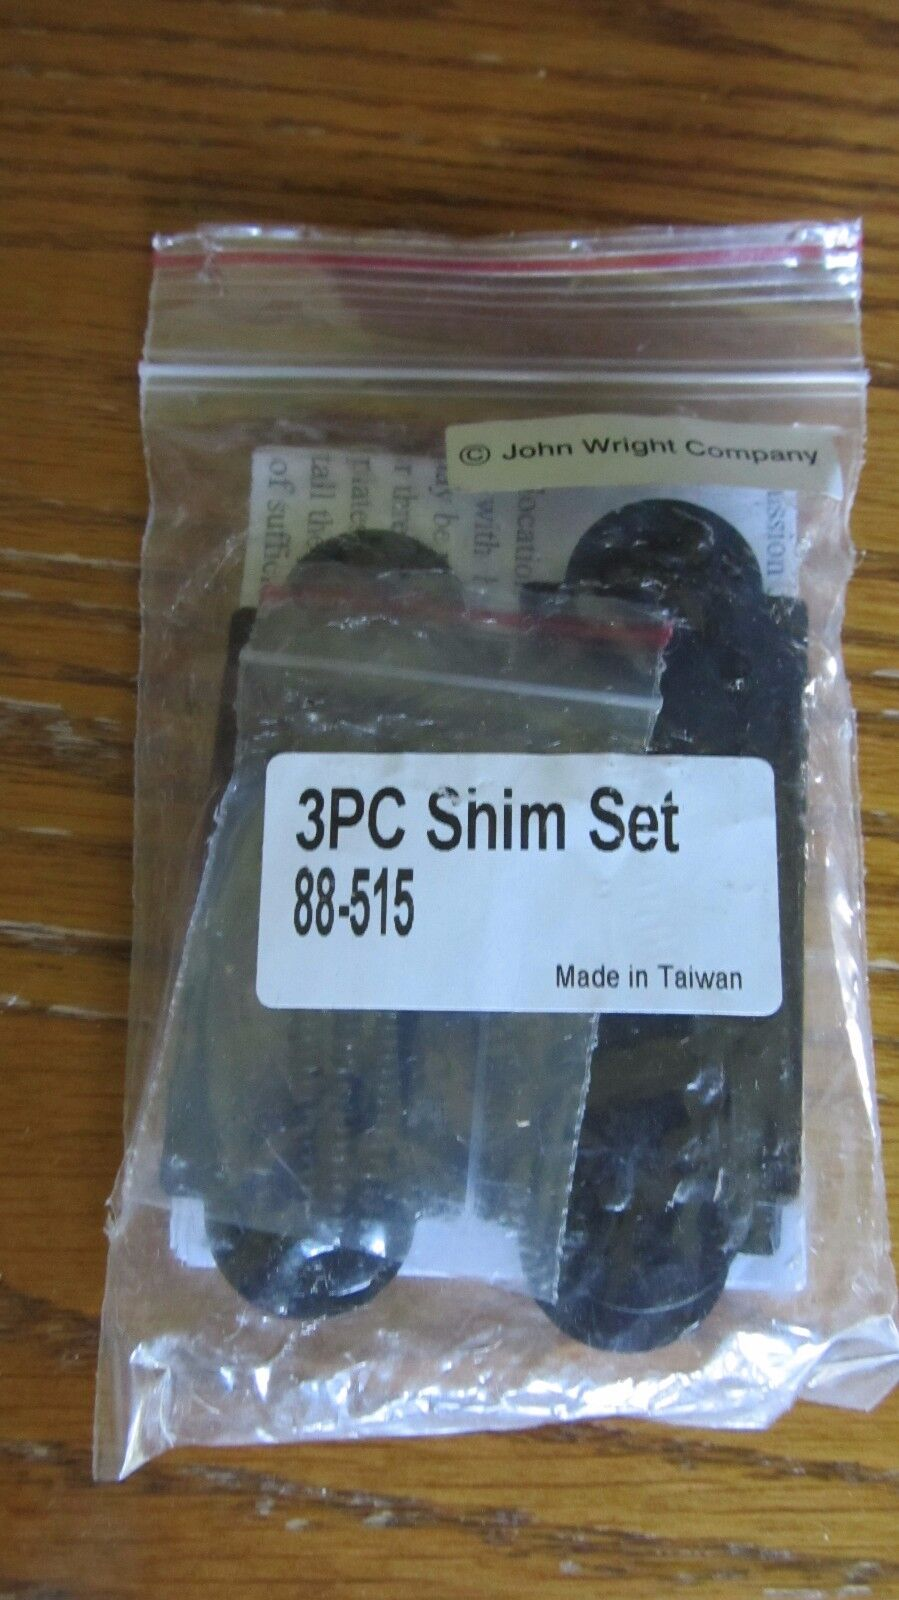 7 NEW John Wright 88-515 3 PC Shim Set for use with NY and Offset Straps